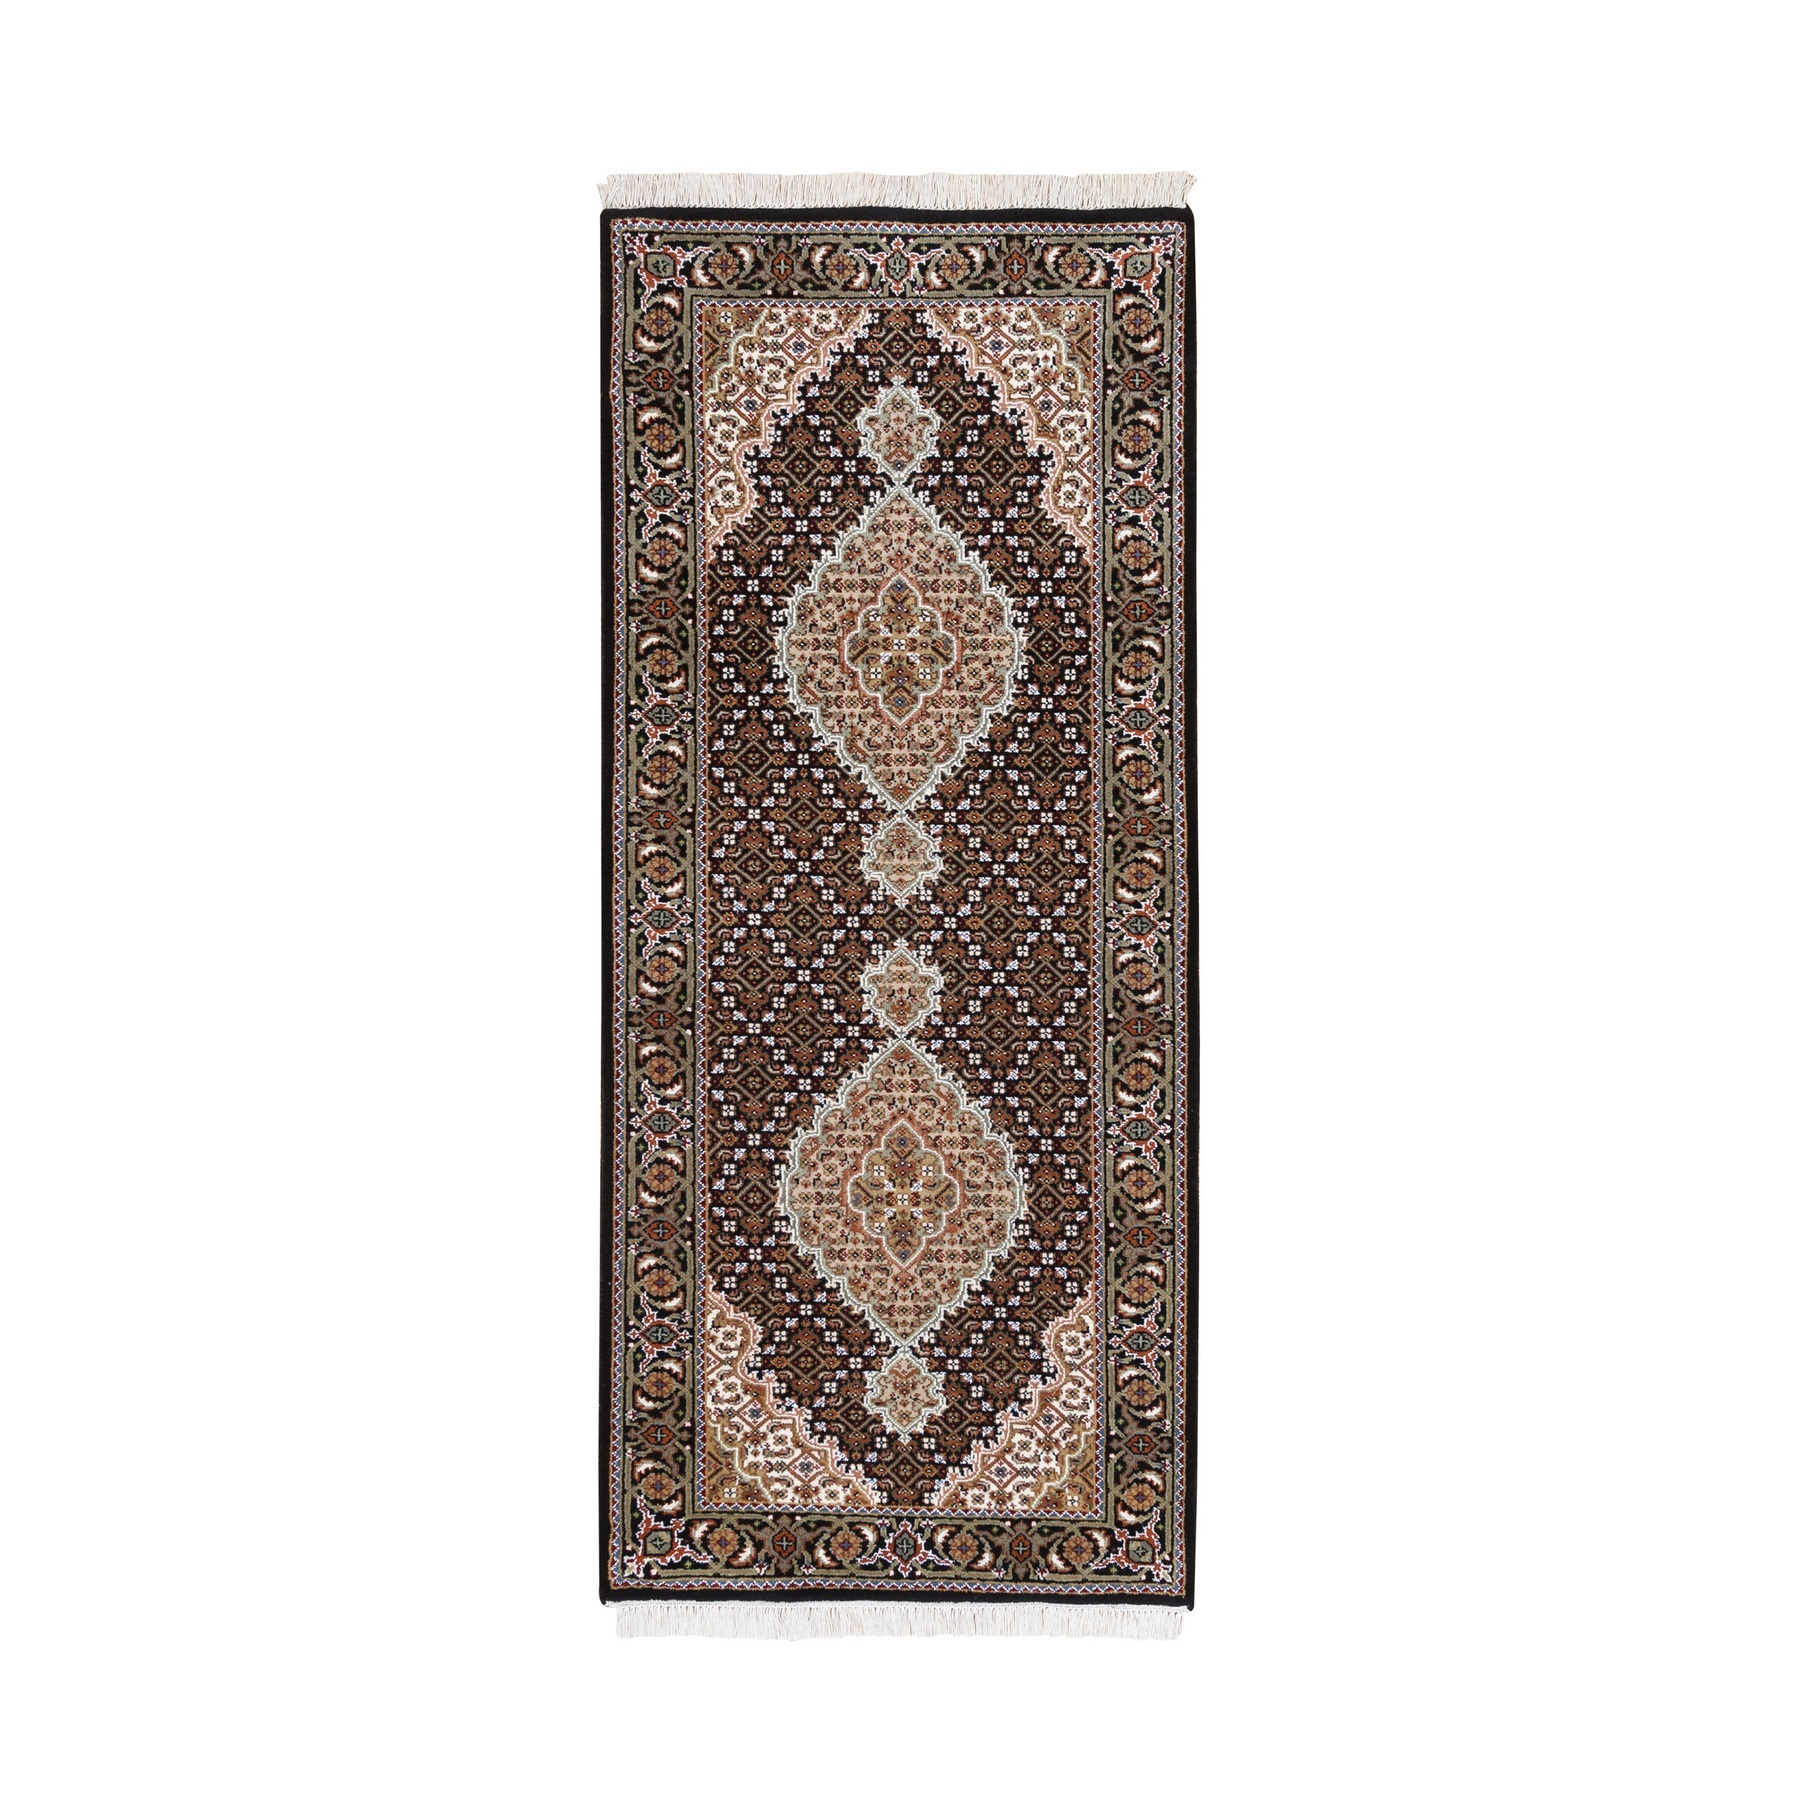 "2'8""x6'6"" Wool And Silk Fish Medallion Design Tabriz Mahi Black Hand Woven Oriental Runner Rug"